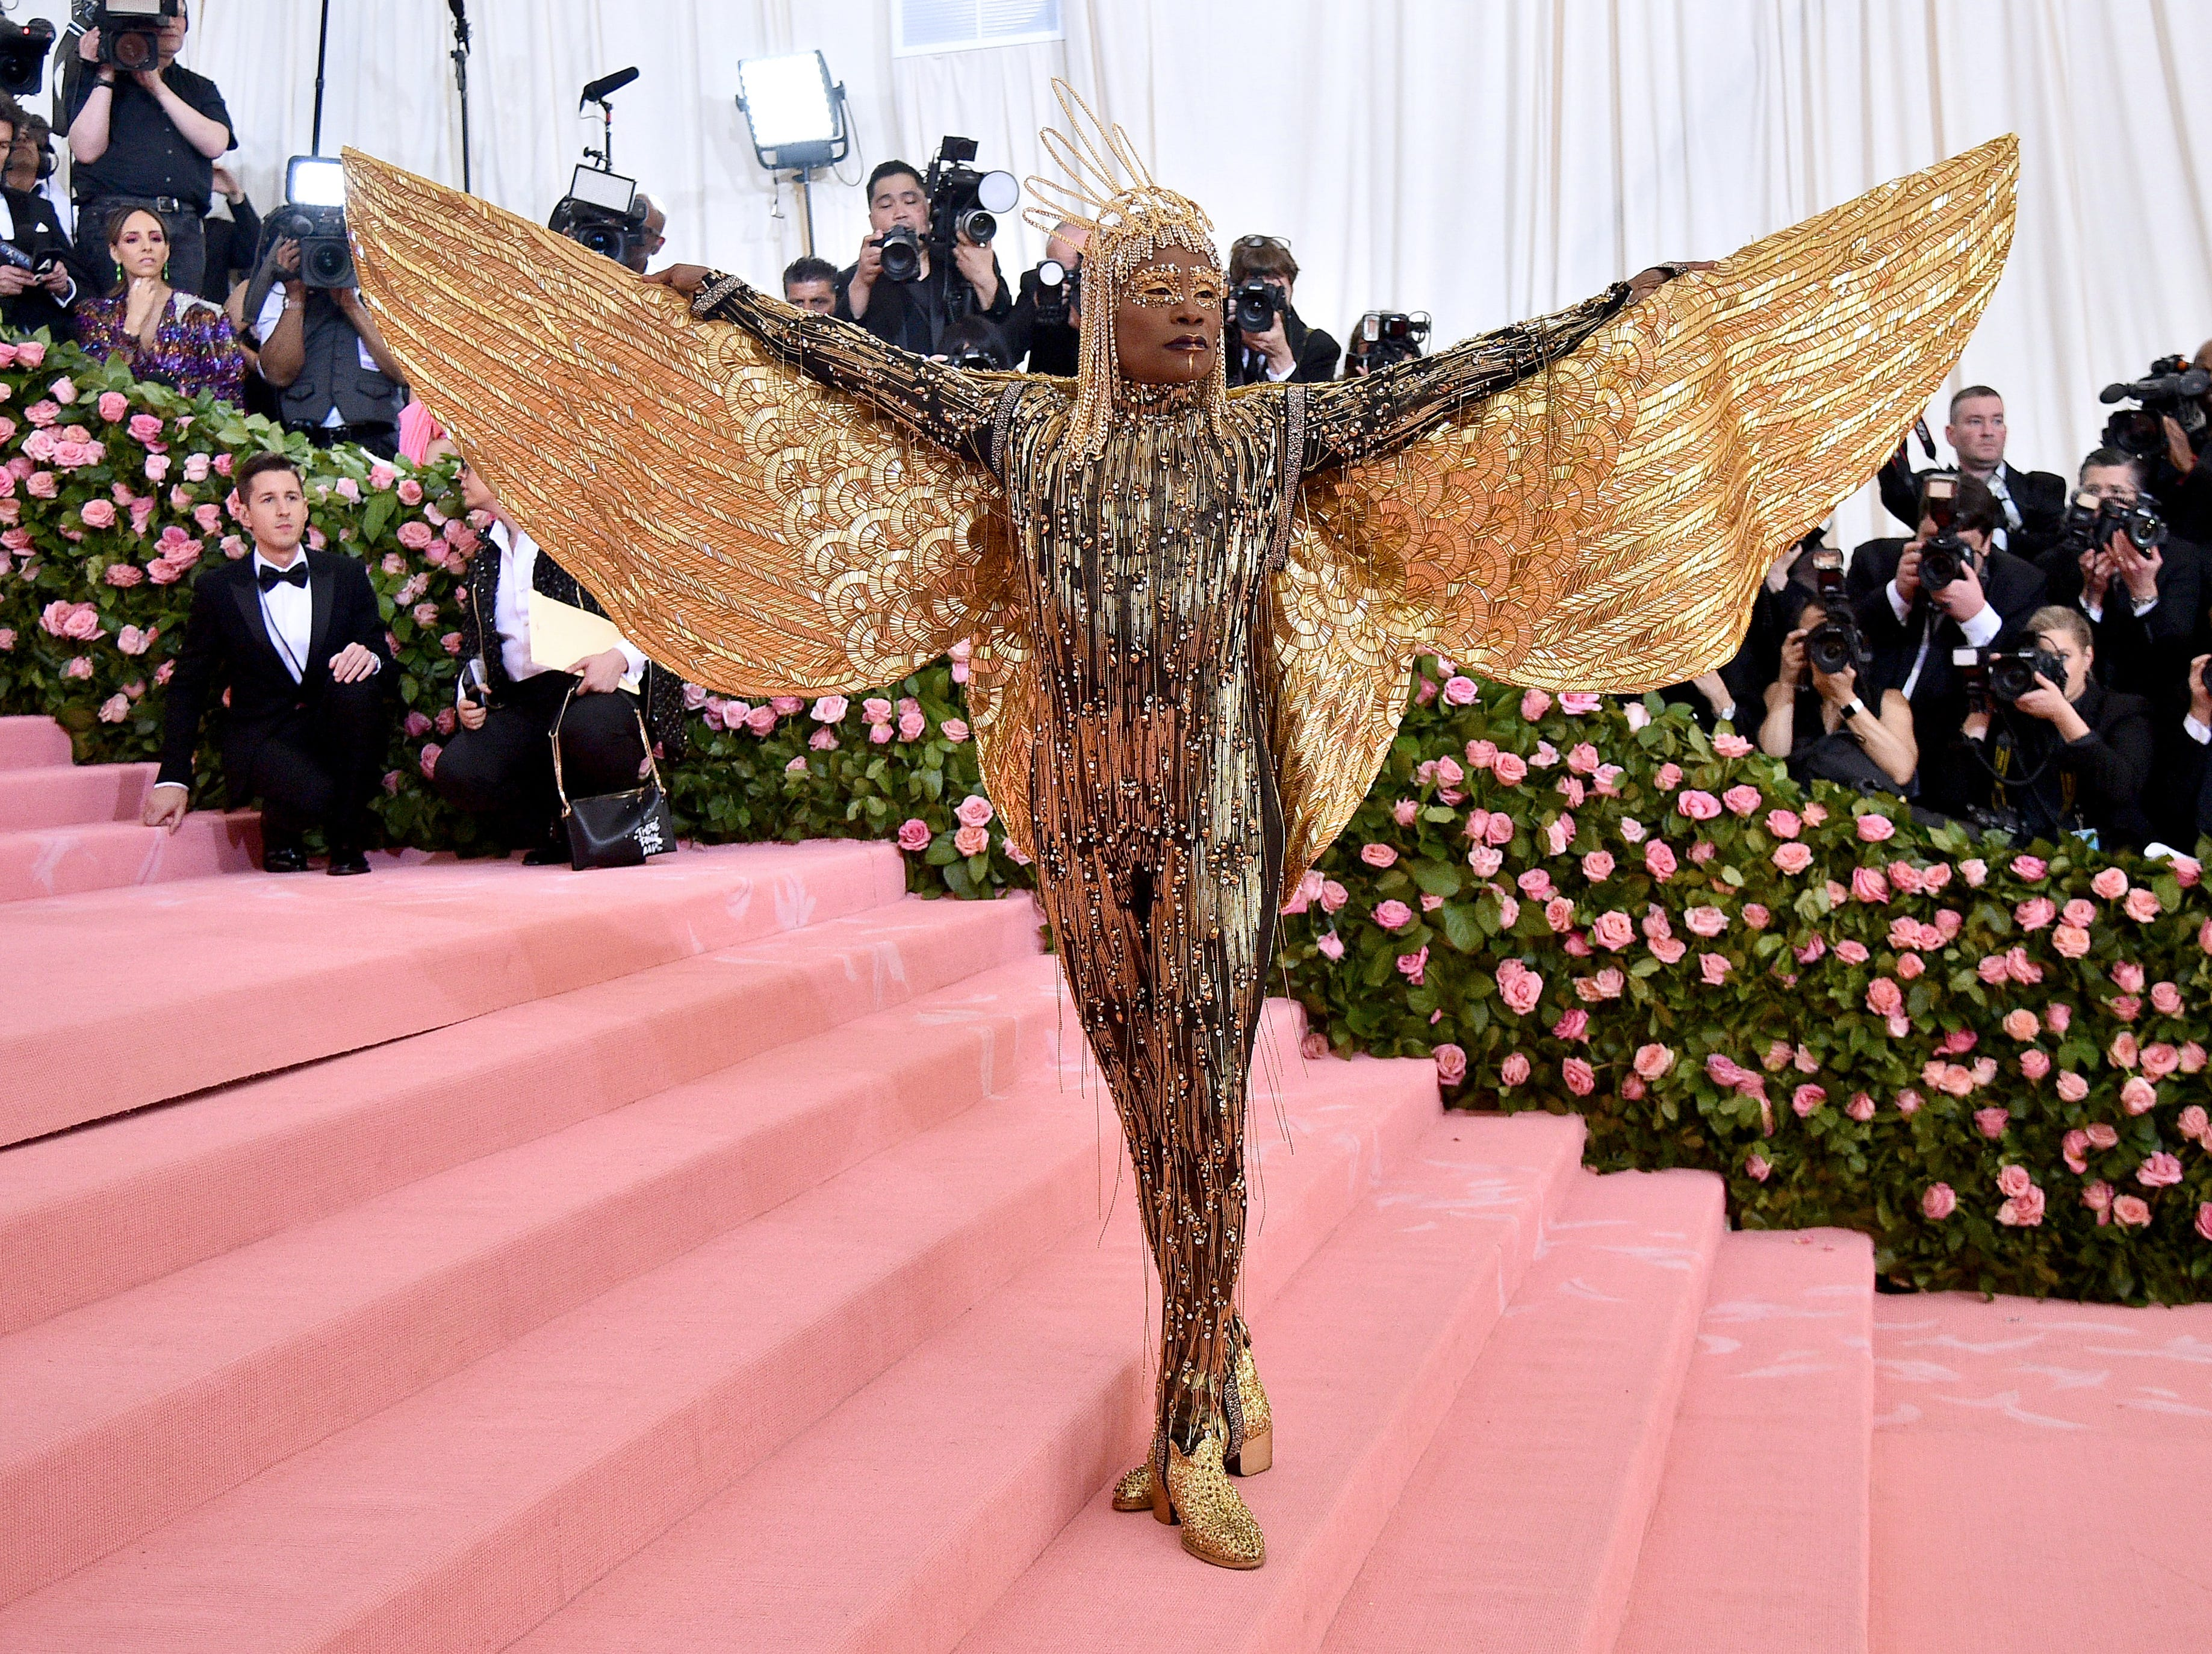 NEW YORK, NEW YORK - MAY 06: Billy Porter attends The 2019 Met Gala Celebrating Camp: Notes on Fashion at Metropolitan Museum of Art on May 06, 2019 in New York City. (Photo by Theo Wargo/WireImage) ORG XMIT: 775333959 ORIG FILE ID: 1147407968